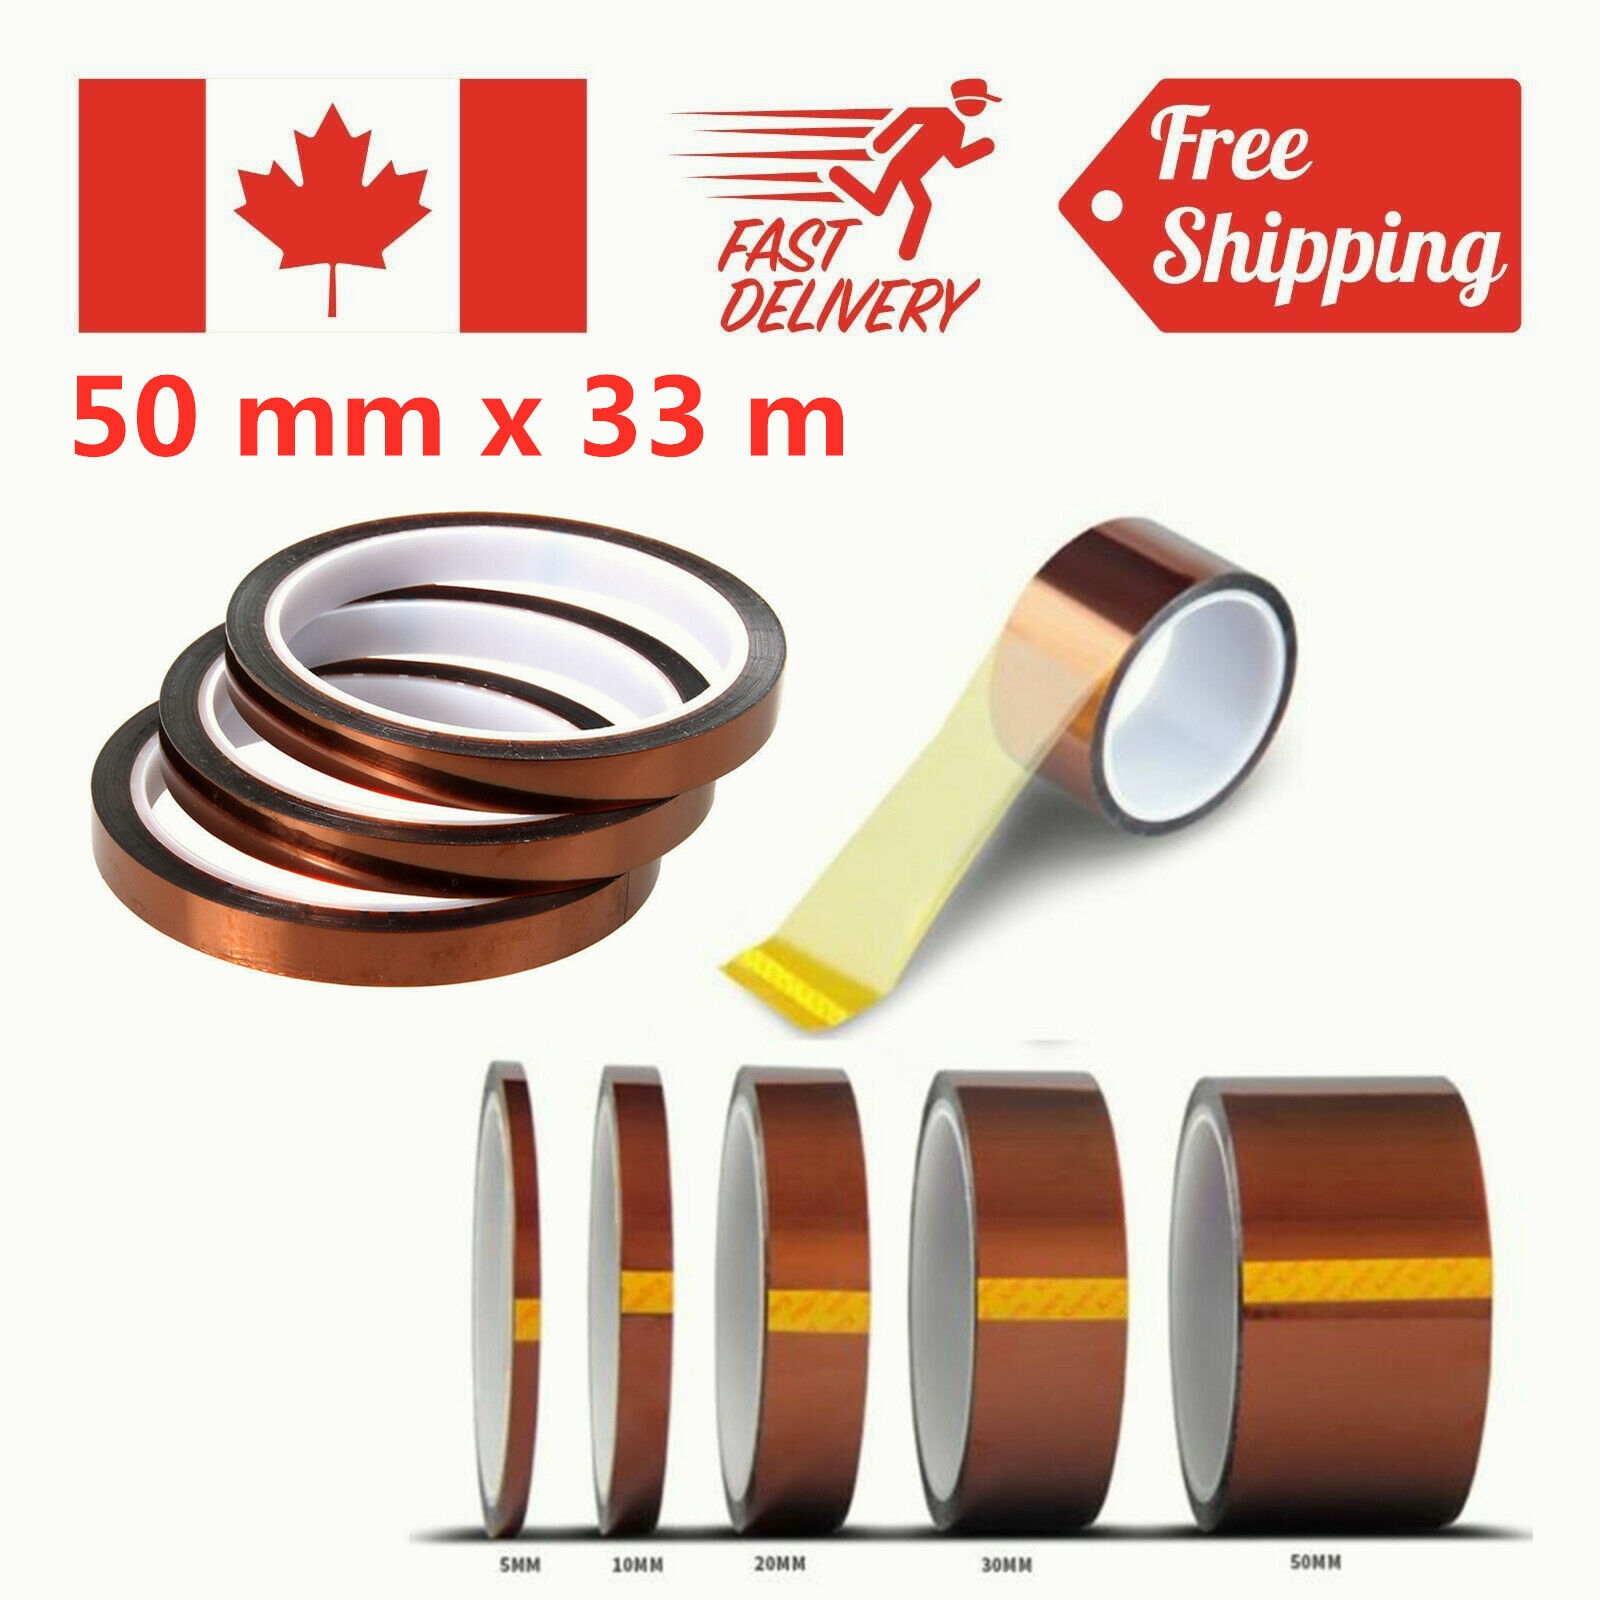 40mm*33m Kapton High temperature heat resistant polyimide tape